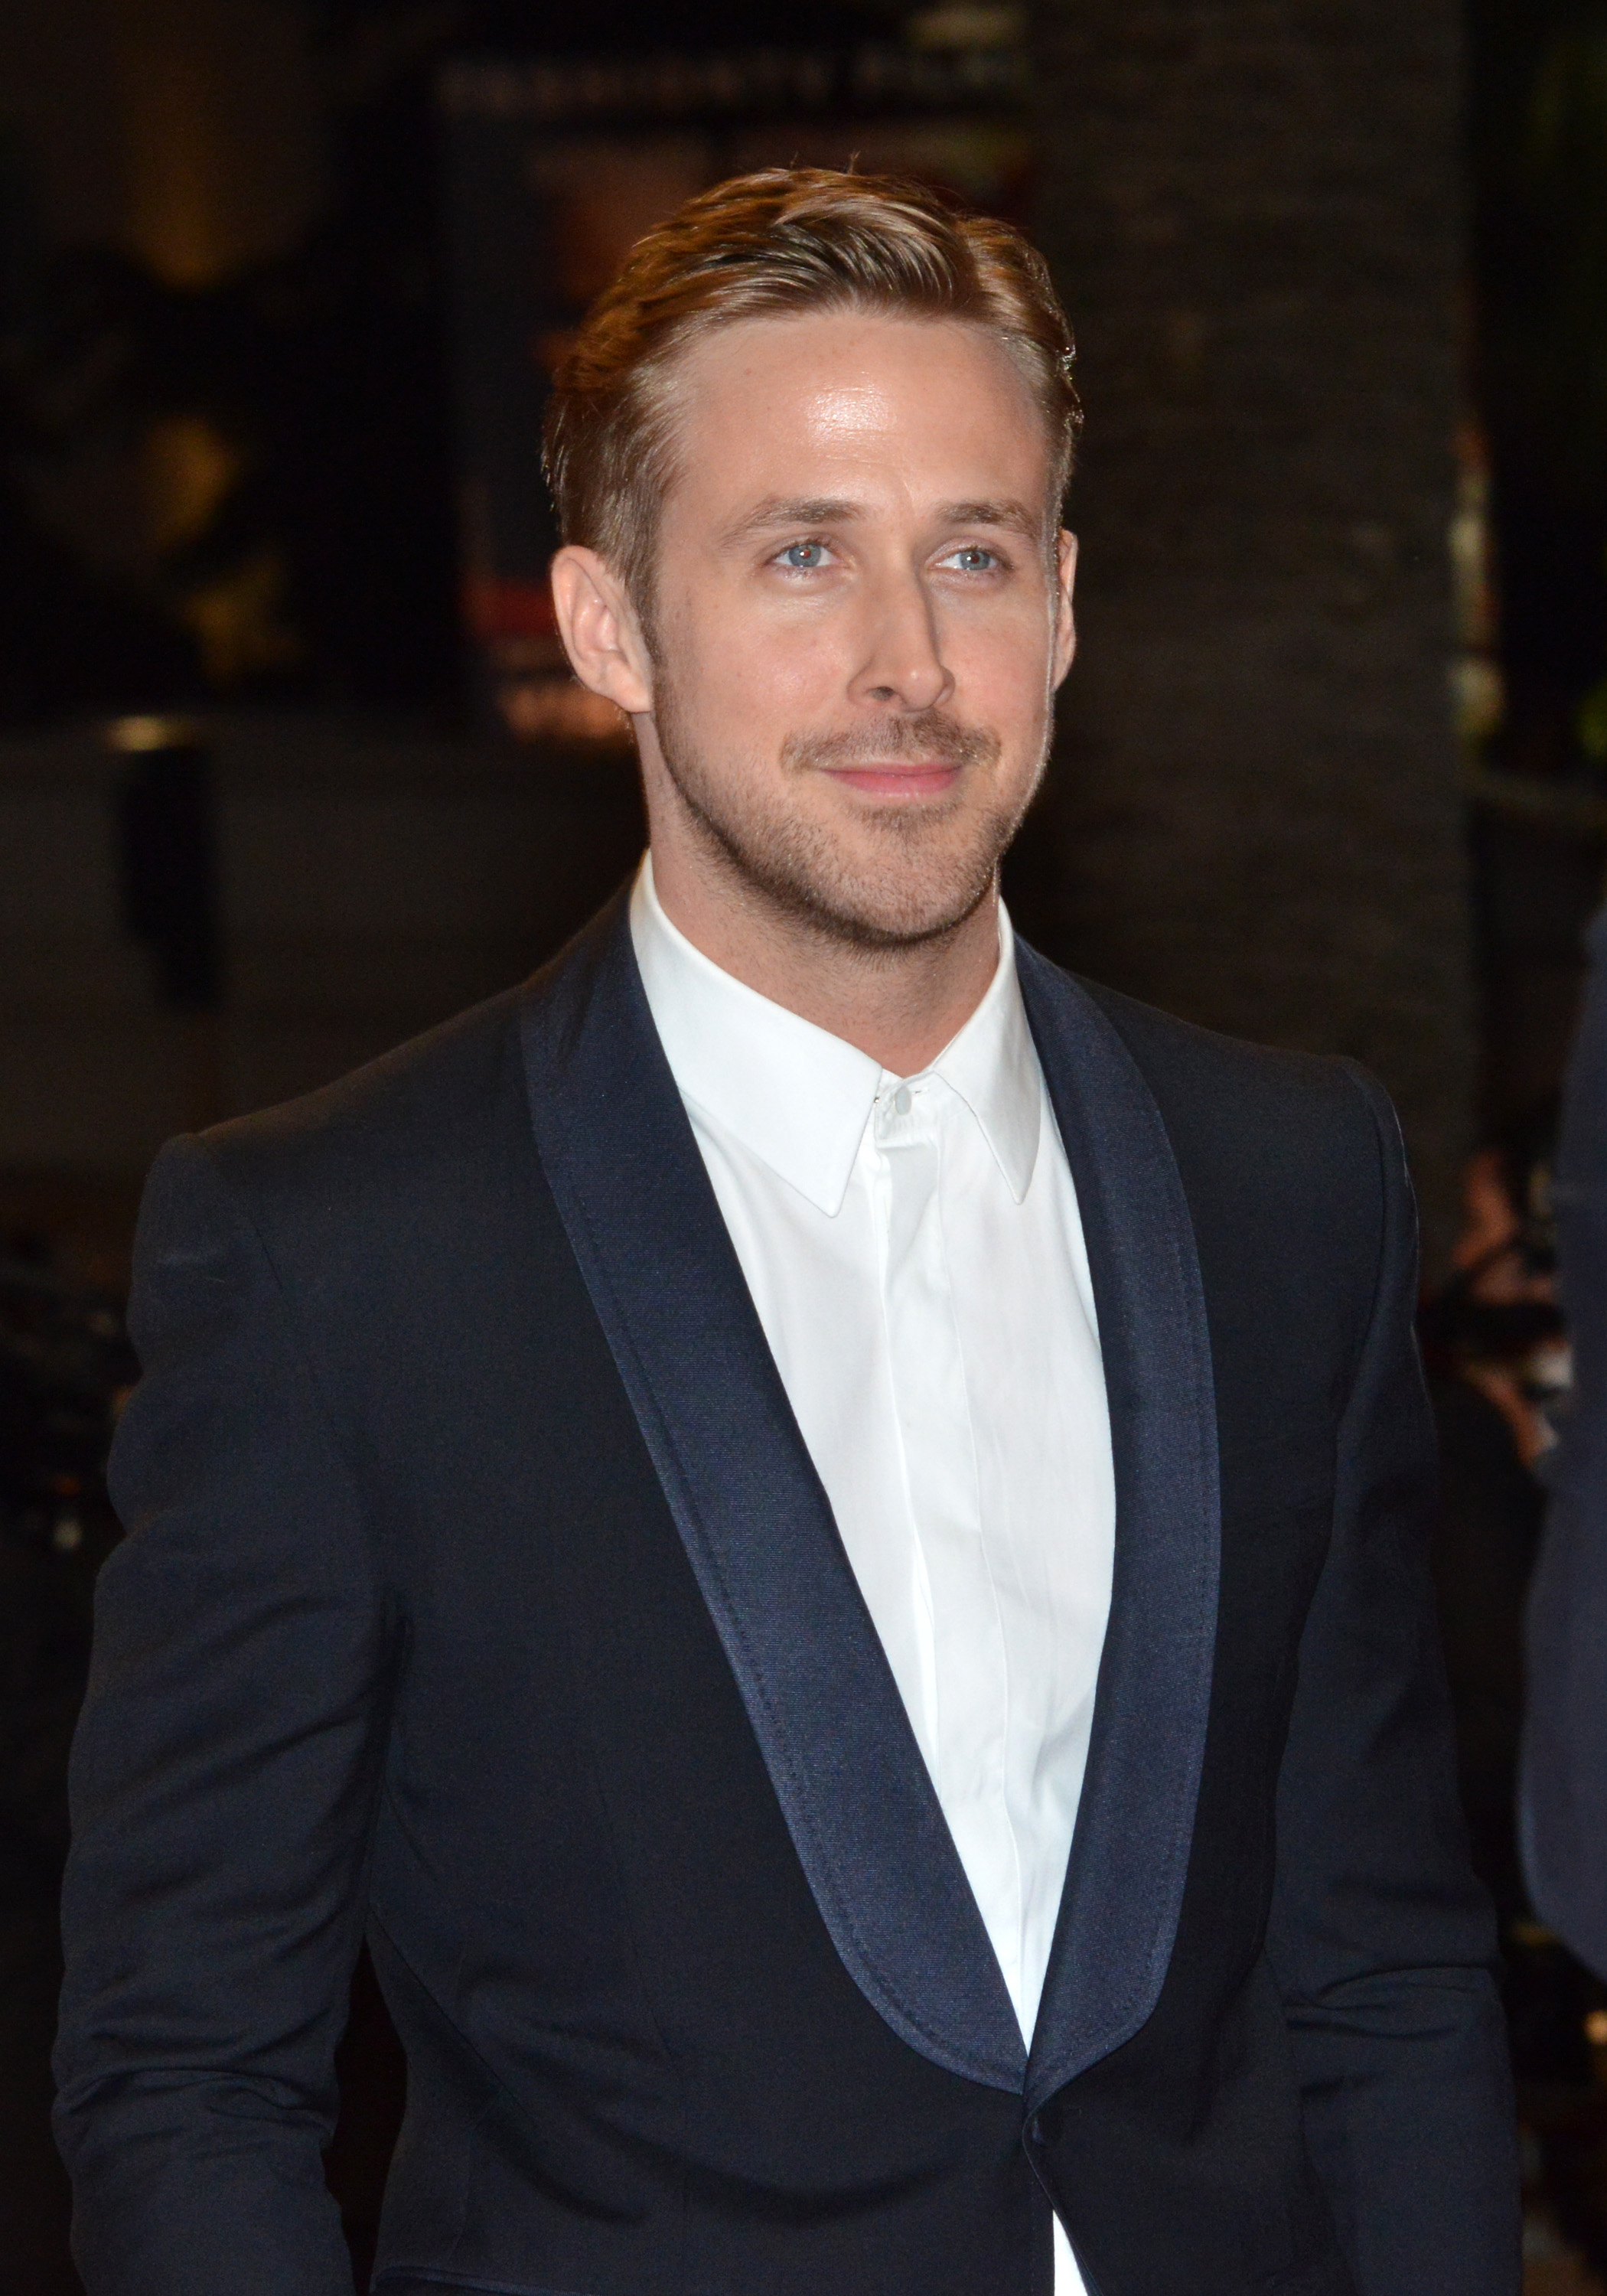 Ryan Gosling attends the 'Lost River' premiere during the 67th Annual Cannes Film Festival on May 20, 2014 in Cannes, France.